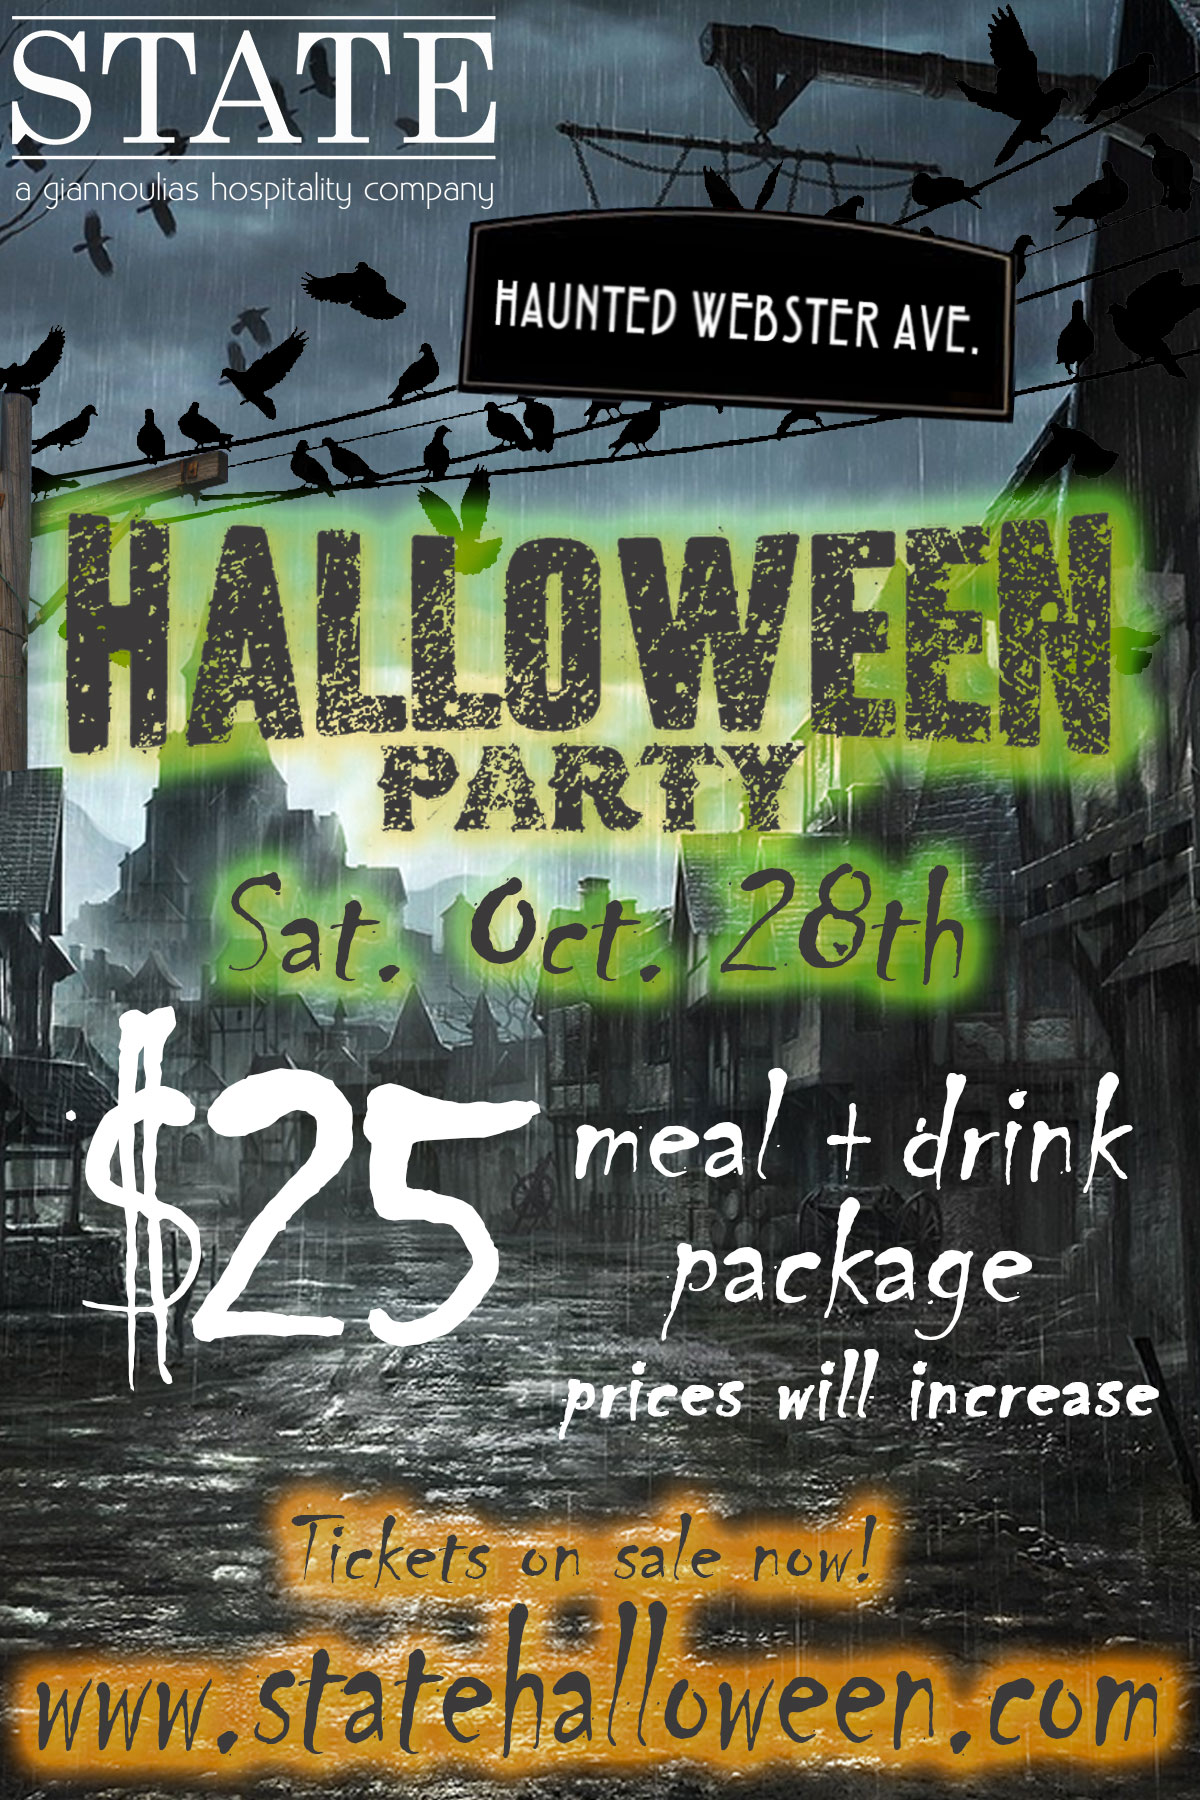 State Halloween Party in Chicago - Join us at State Halloween! Package includes: Calls, Wells, Miller Lite Drafts, Coors Light Drafts, and 1 Meal Item!